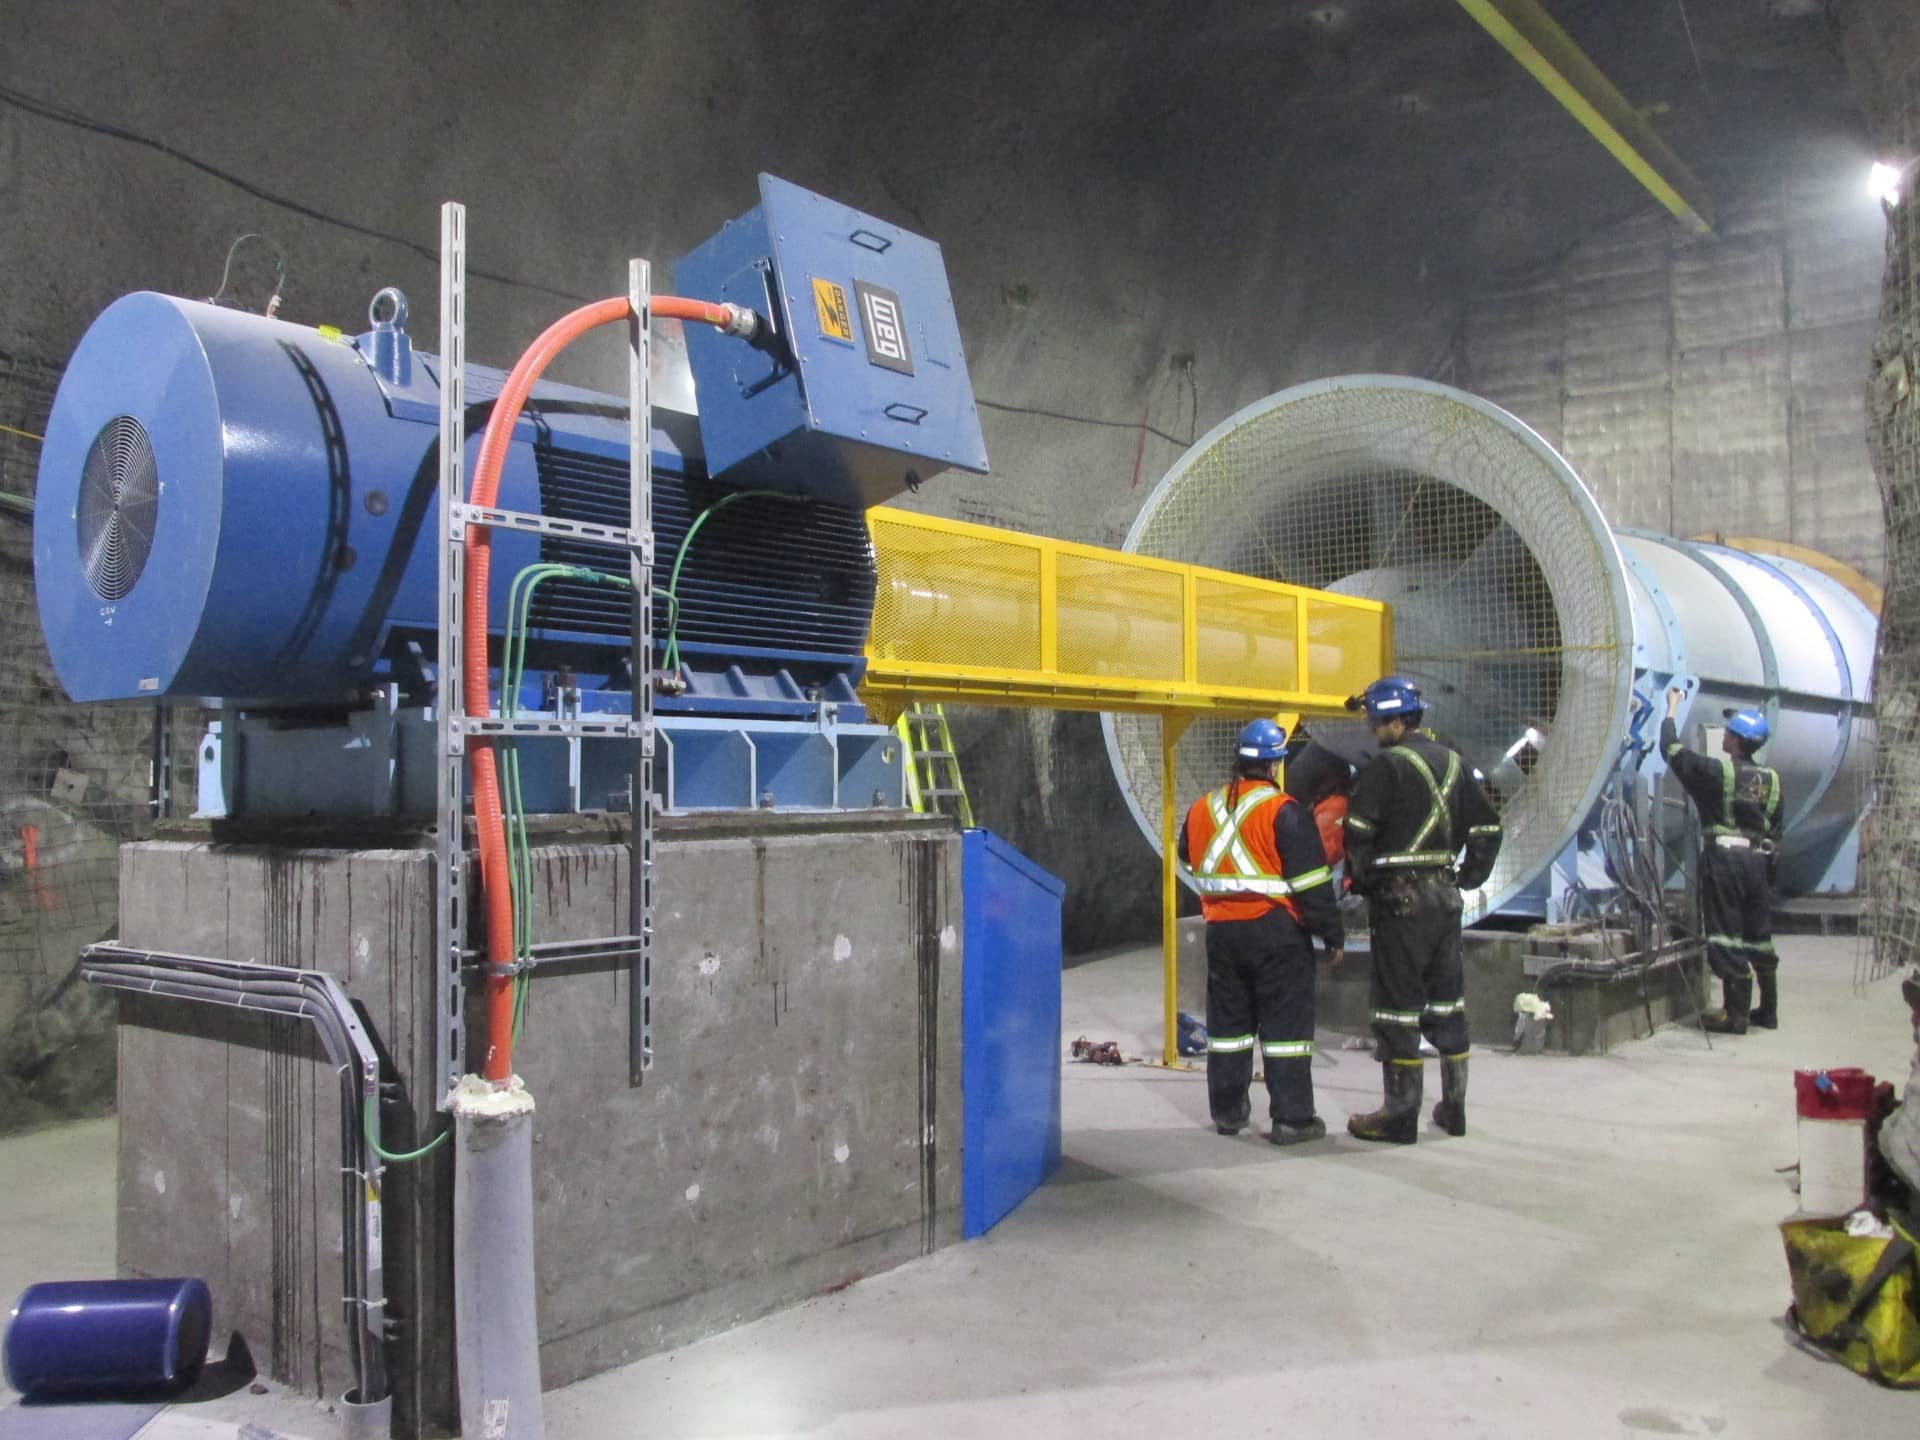 A very big turbine Goldex with workers working on it